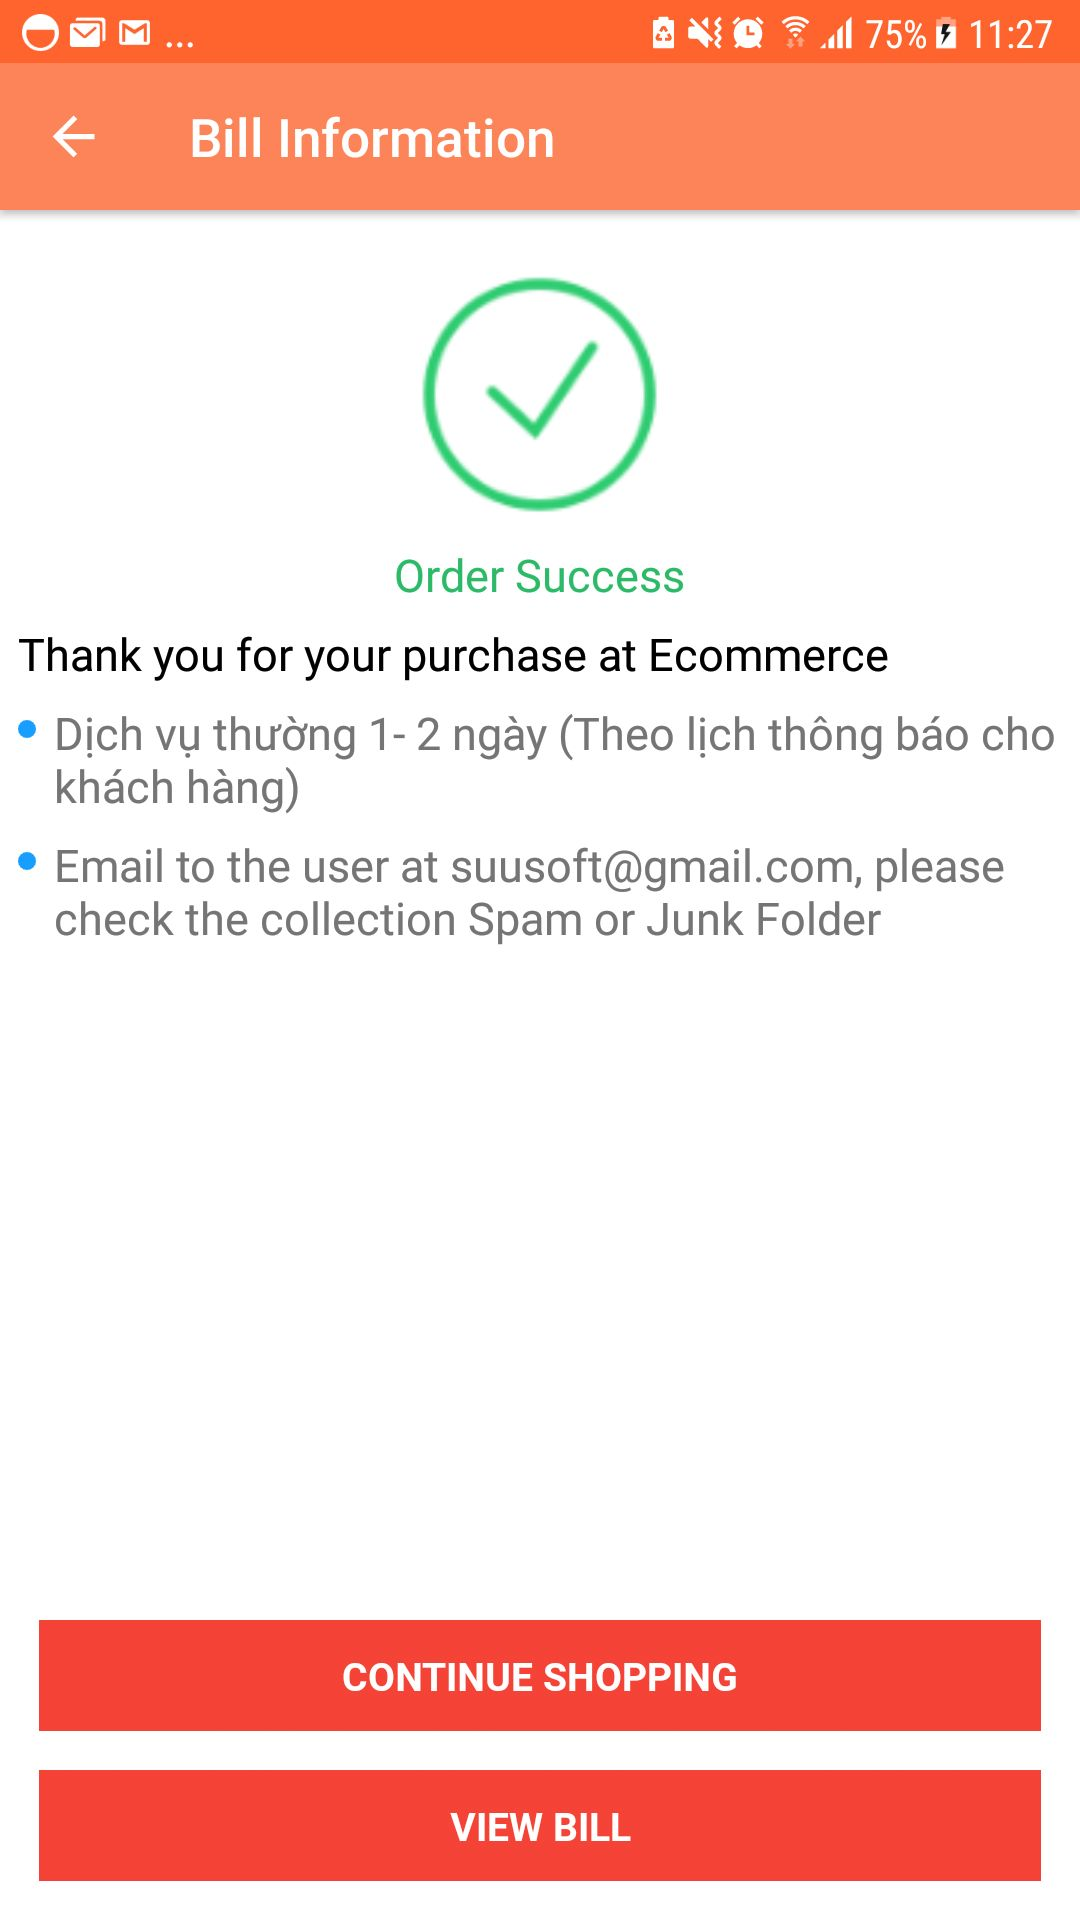 Shopping App - Android Source Code Screenshot 16